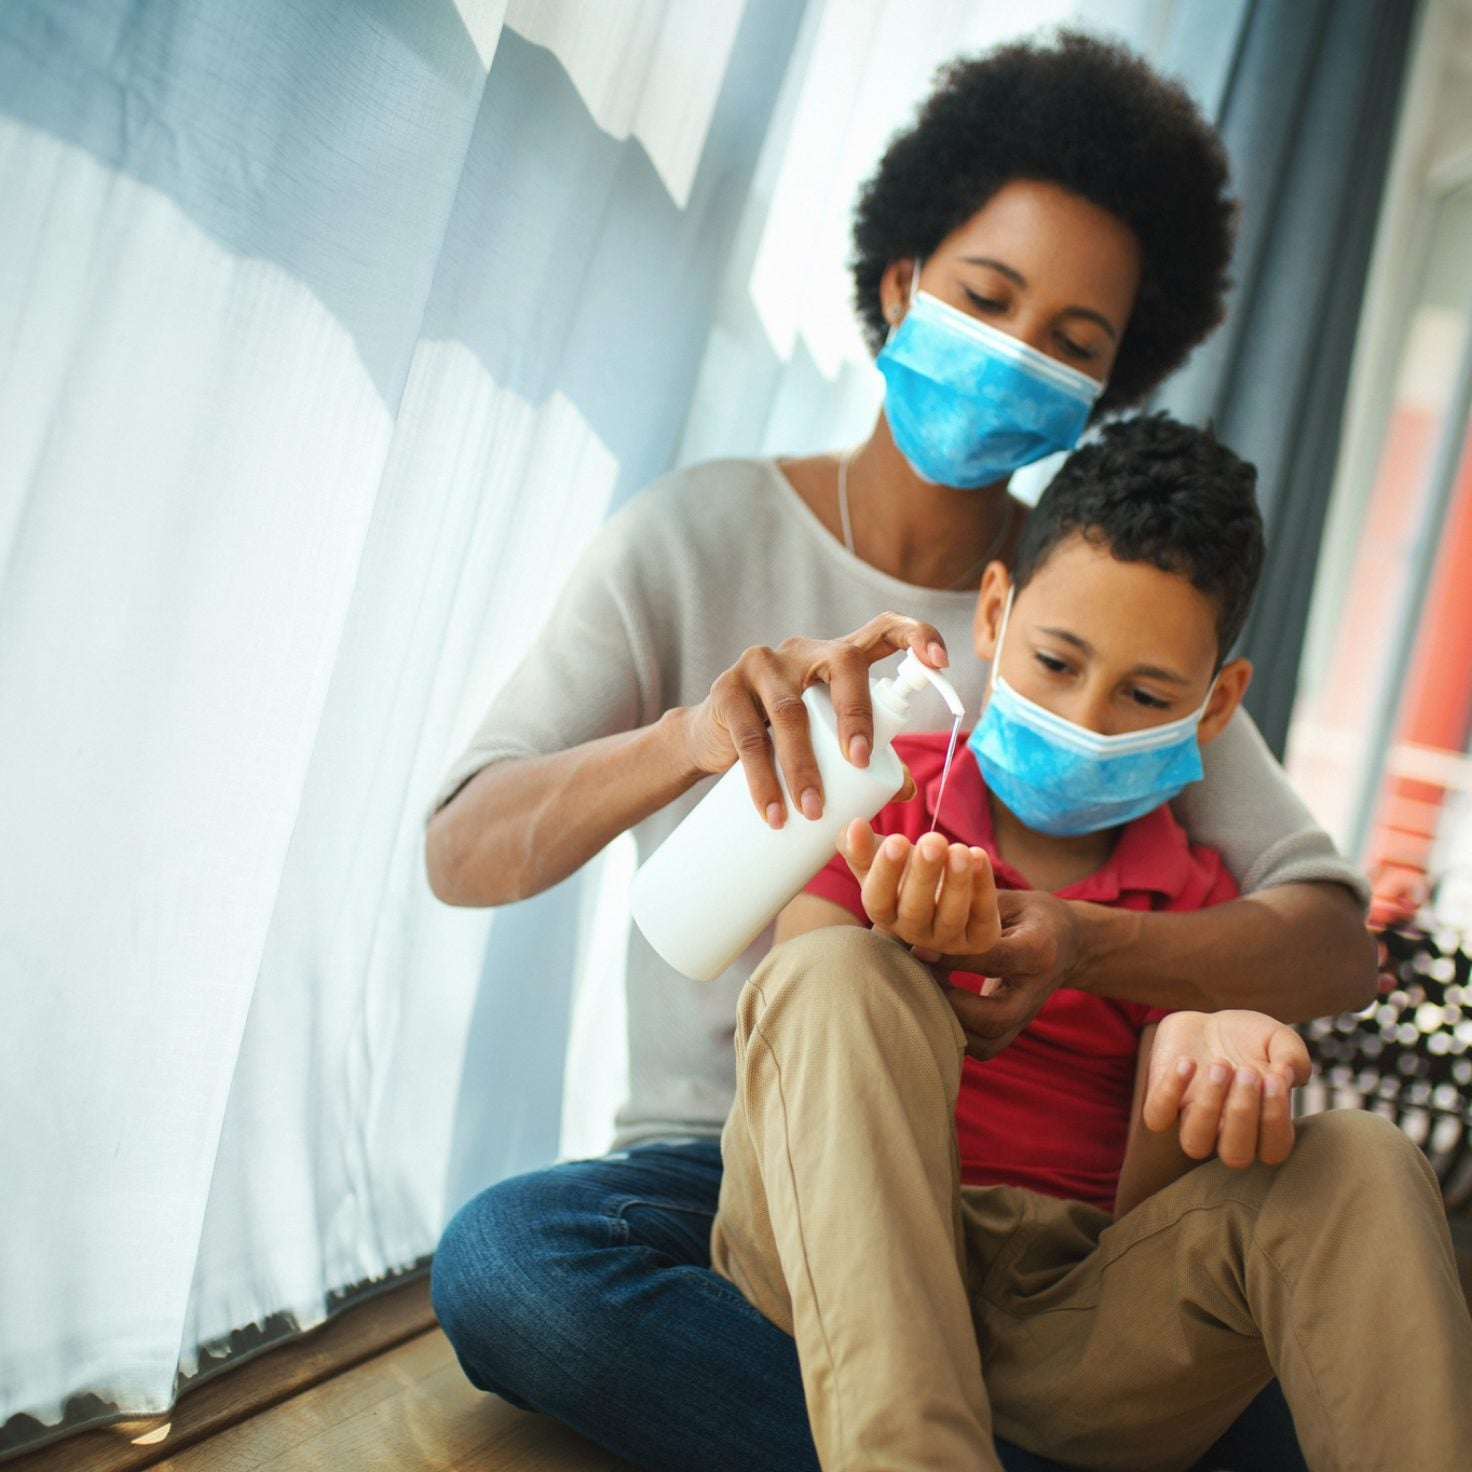 A New Way Coronavirus Might Be Showing Up In Children